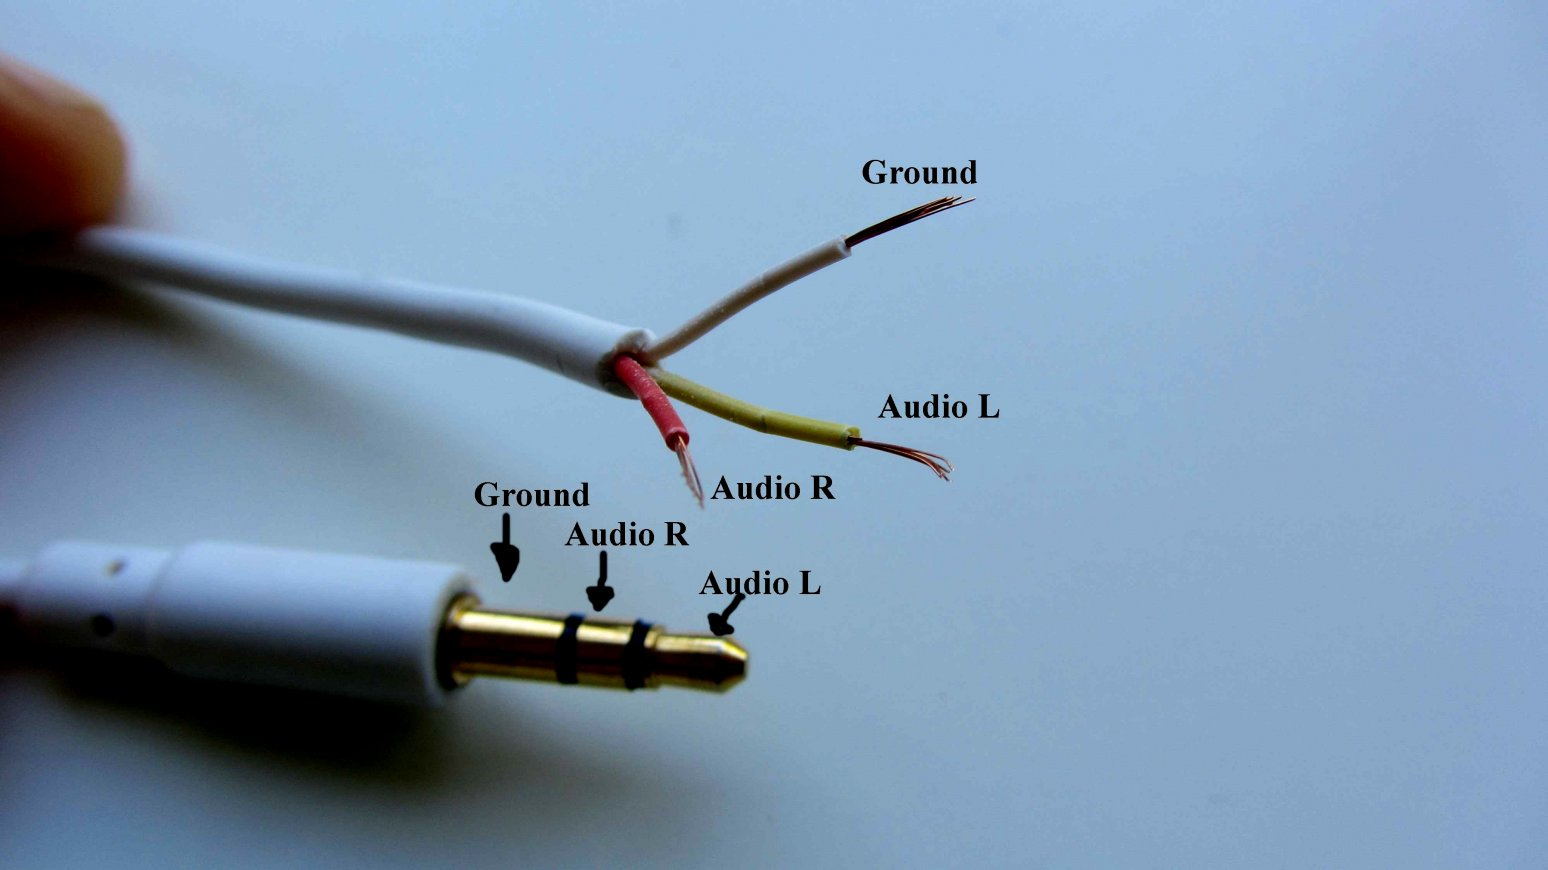 Stereo Jack To Usb Wiring Diagram | Manual E-Books - Usb To Stereo Jack Wiring Diagram